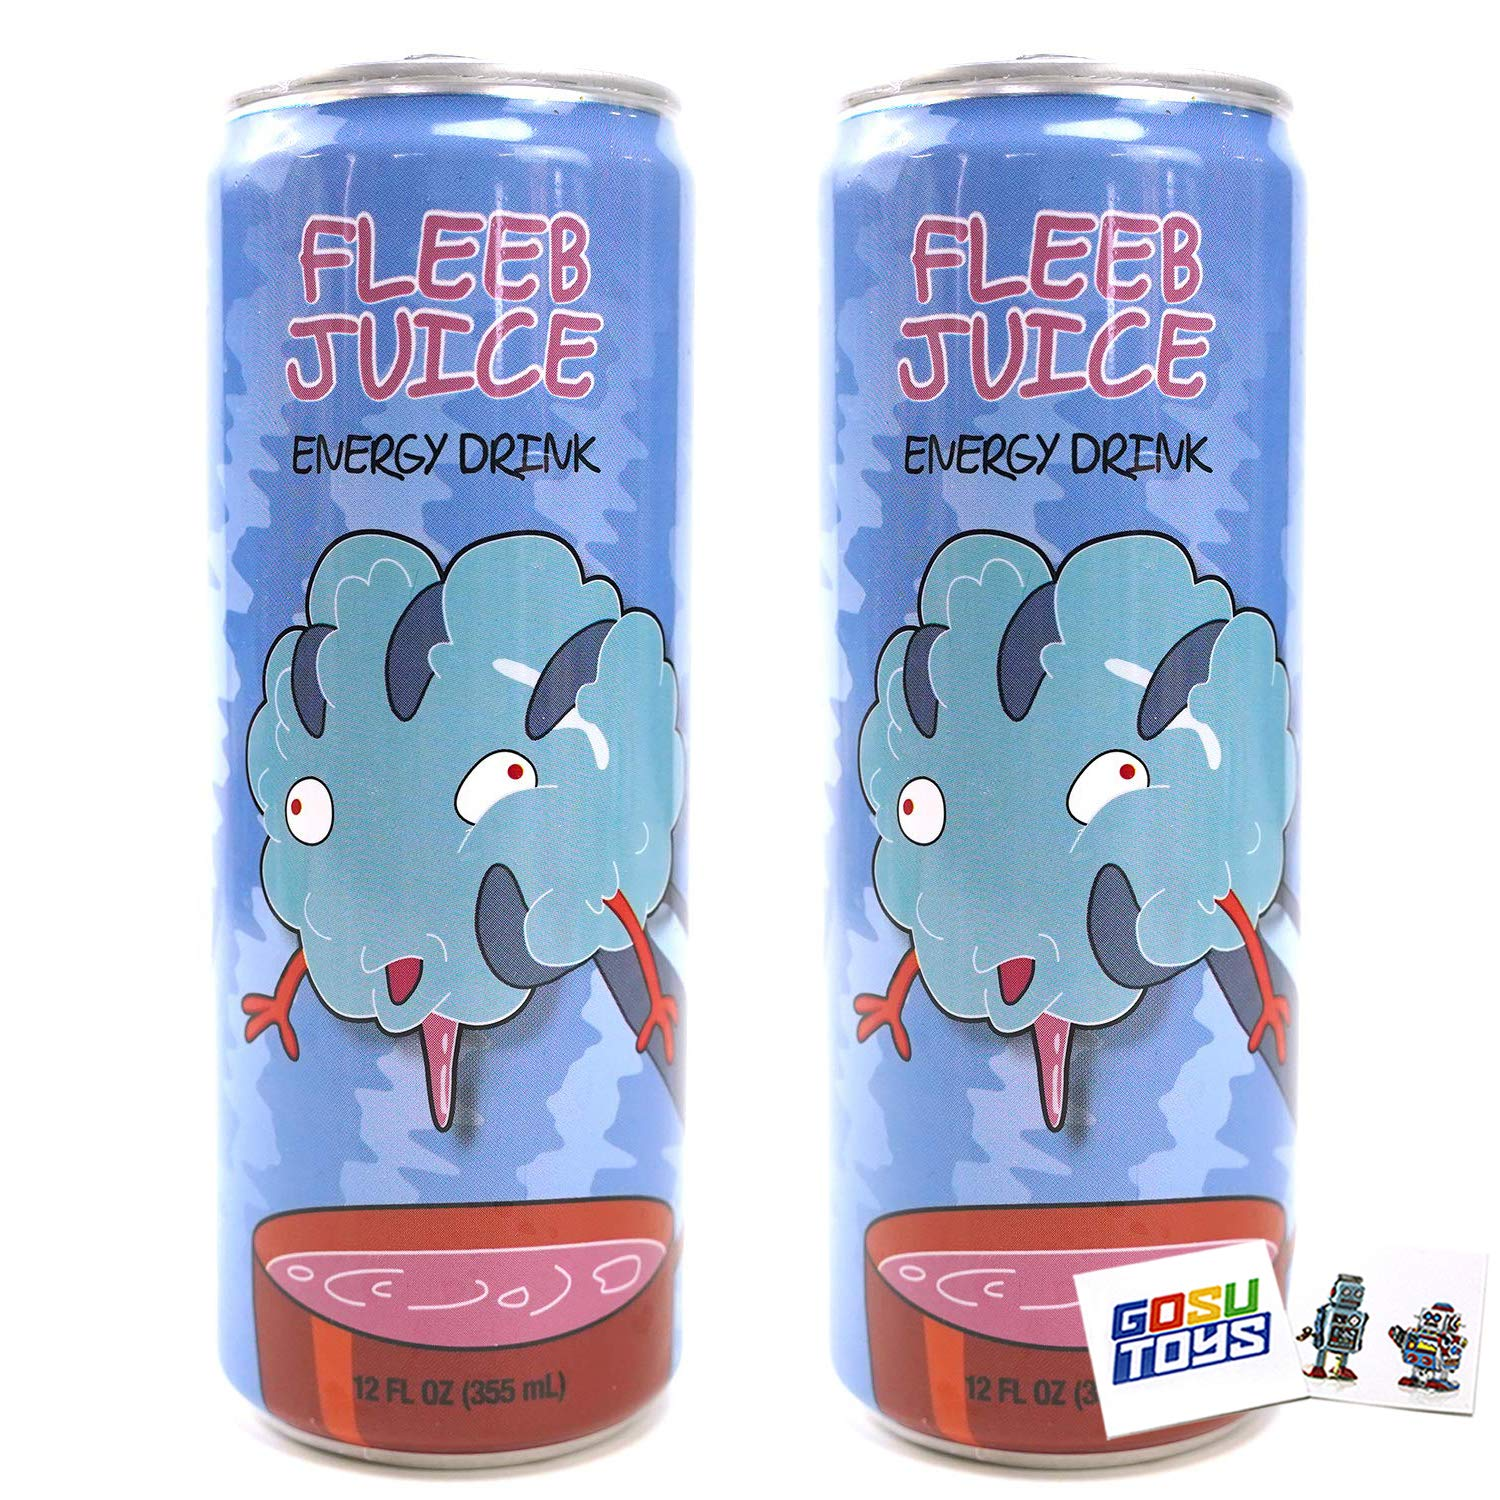 Rick and Morty Fleeb Juice Energy Drink 12 FL OZ (355mL) Can (2 Pack) With 2 GosuToys Stickers